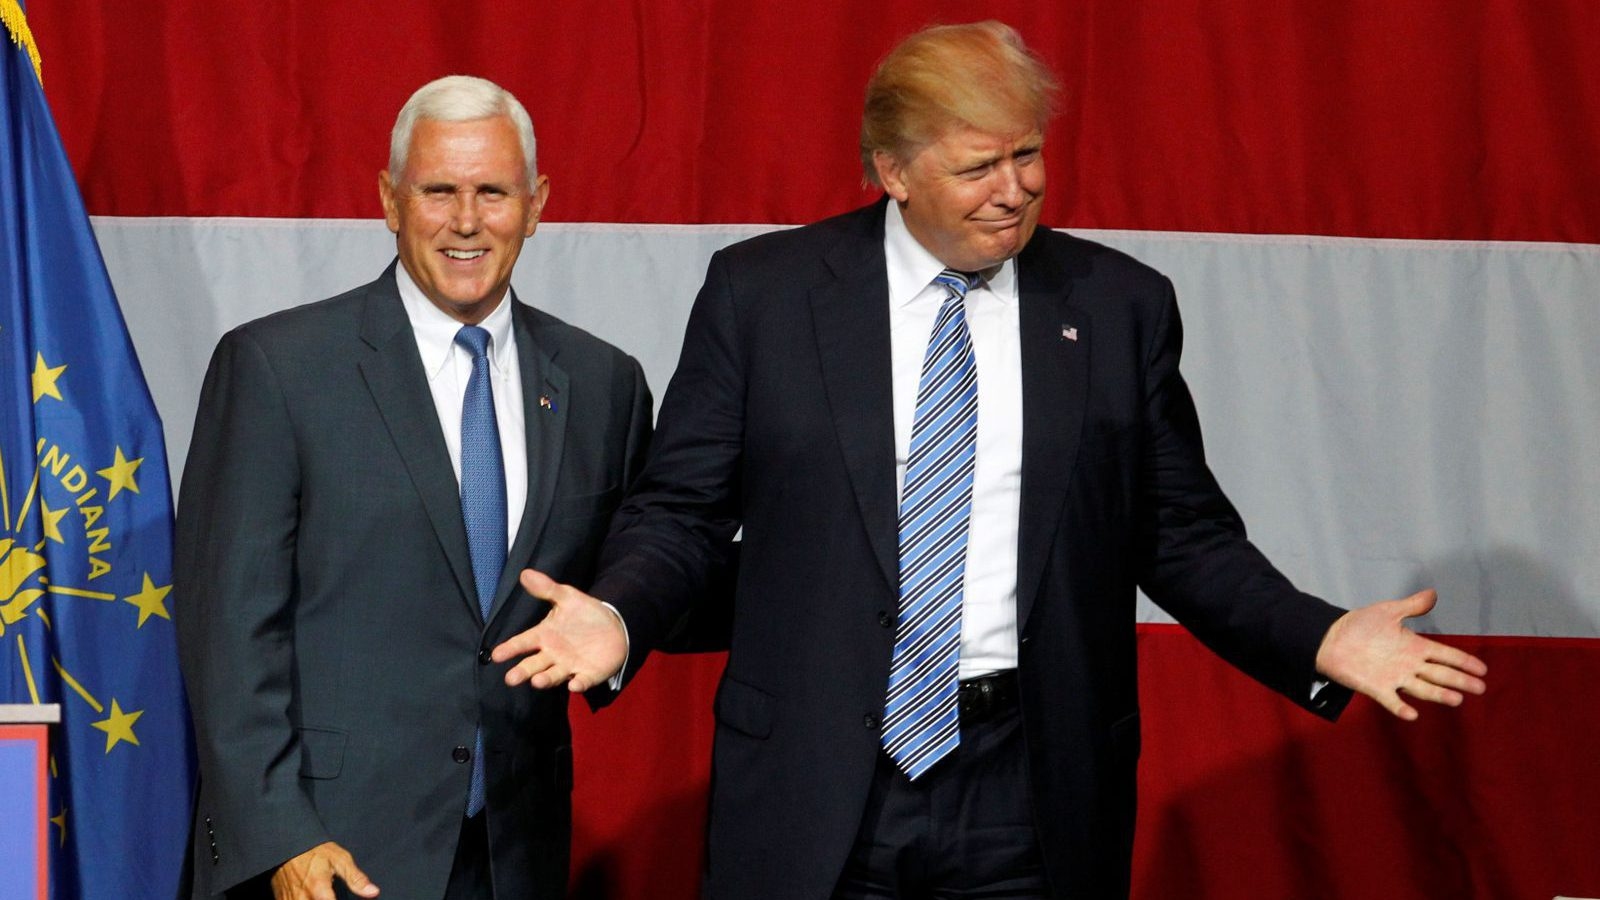 Republican U.S. presidential candidate Donald Trump (R) and Indiana Governor Mike Pence (L) wave to the crowd before addressing the crowd during a campaign stop at the Grand Park Events Center in Westfield, Indiana, July 12, 2016. REUTERS/John Sommers II - RTSHNE6